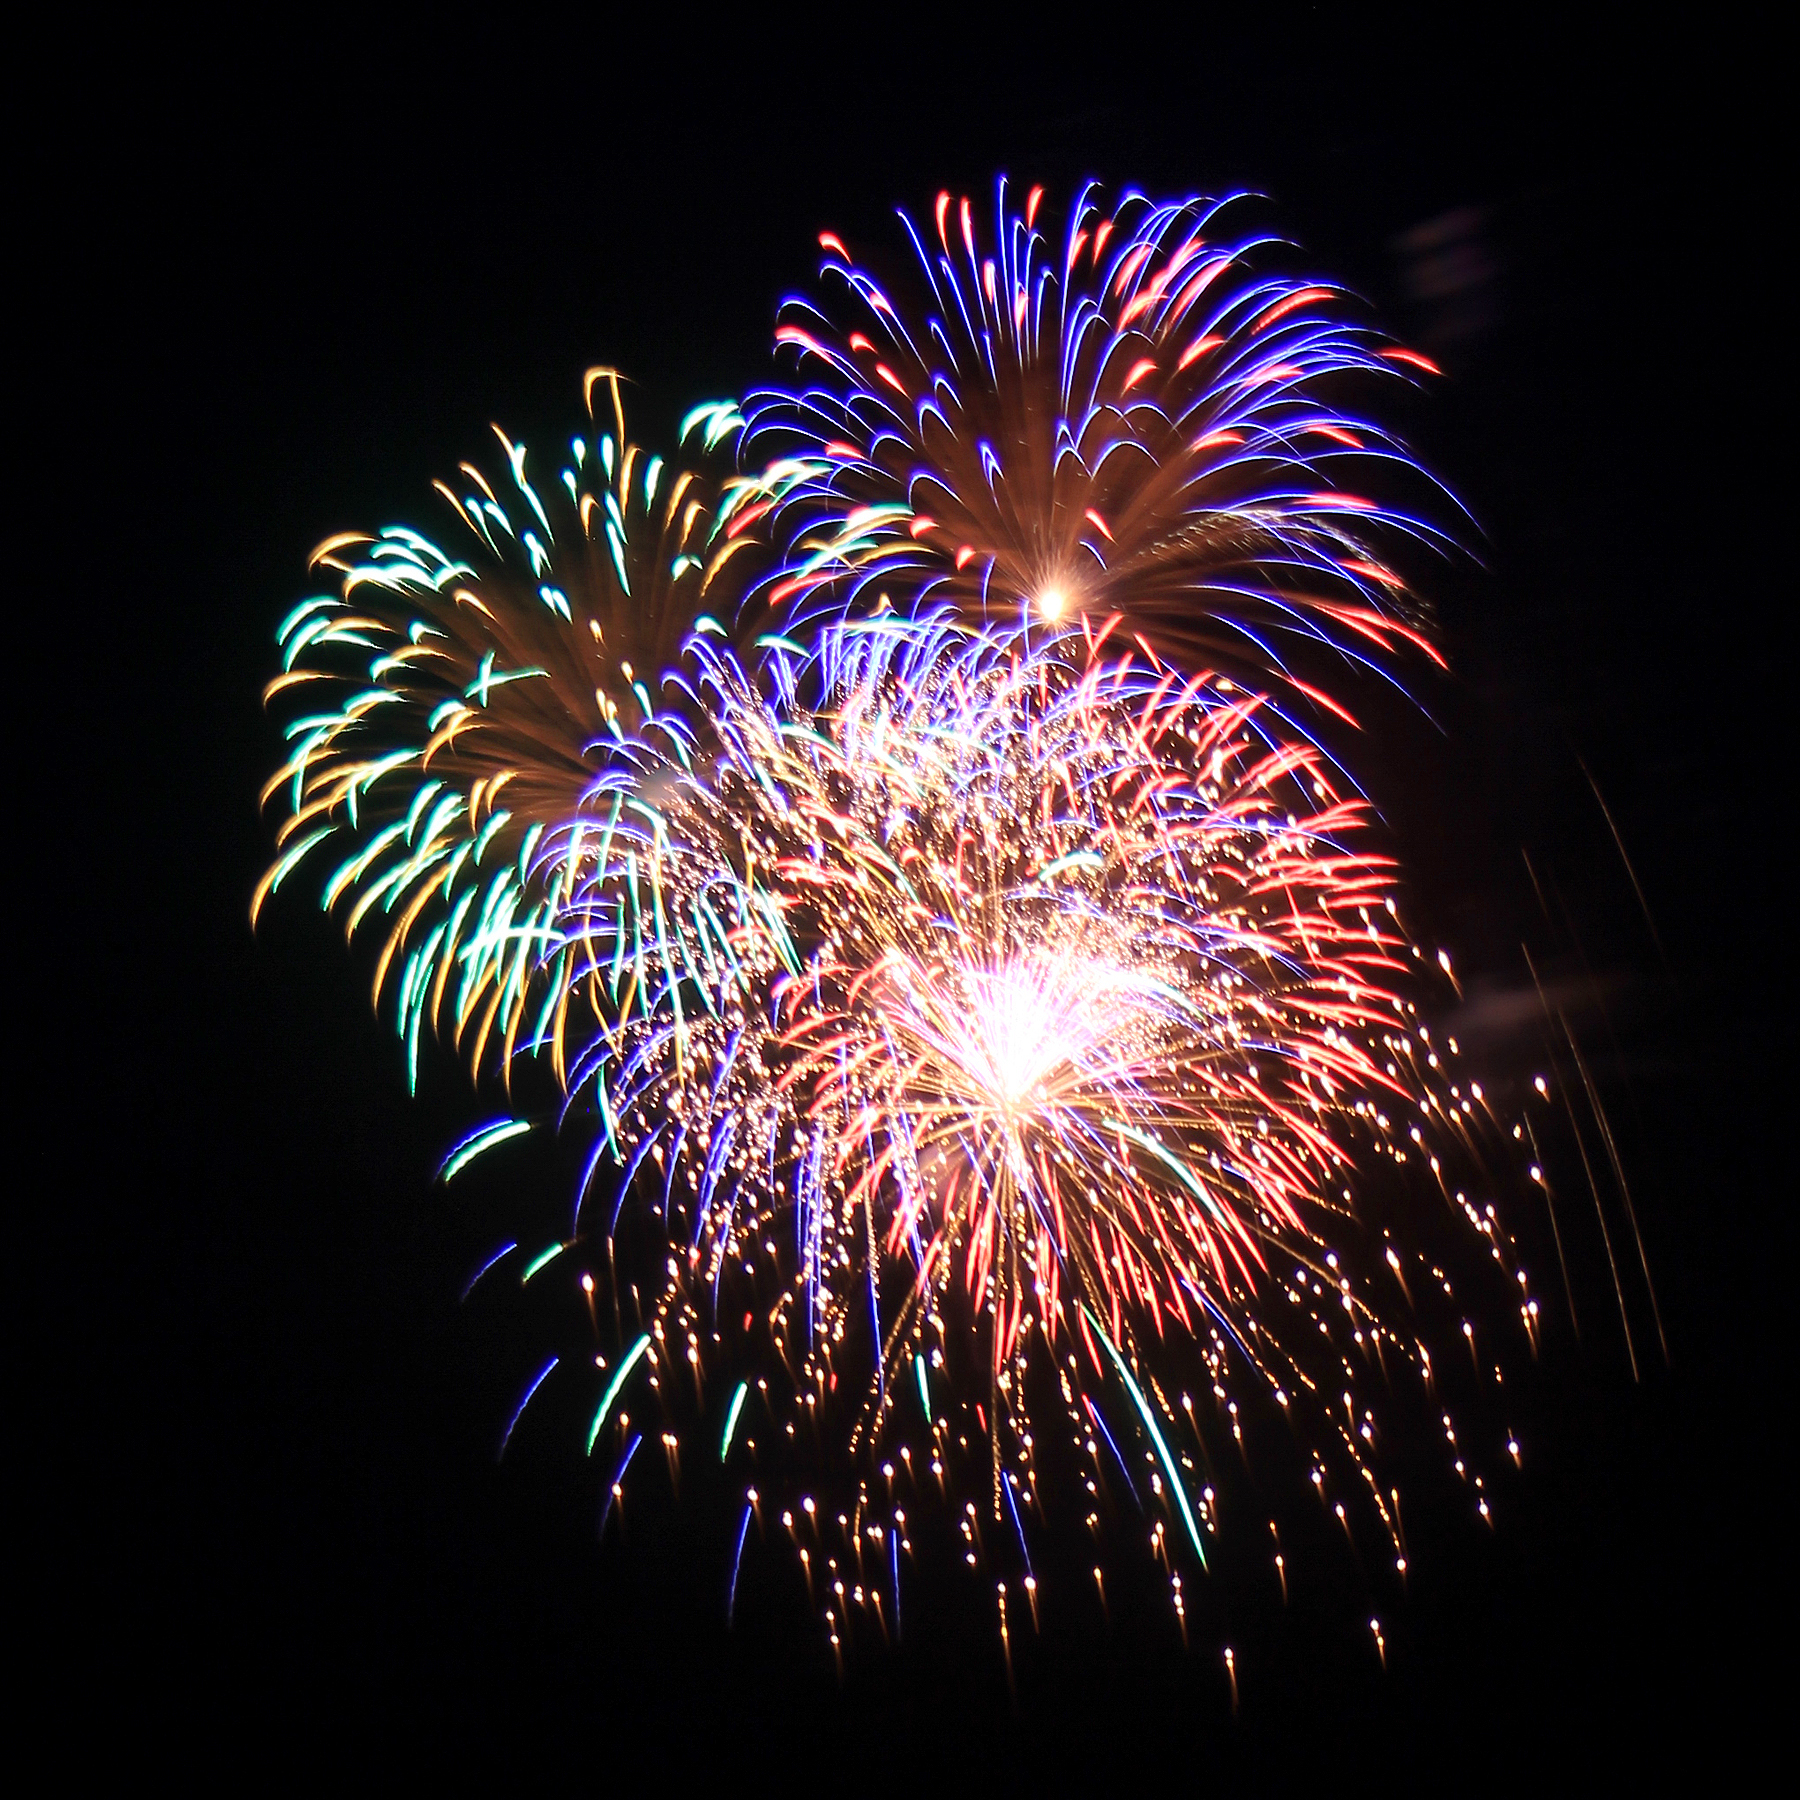 Images of Fireworks | 1800x1800